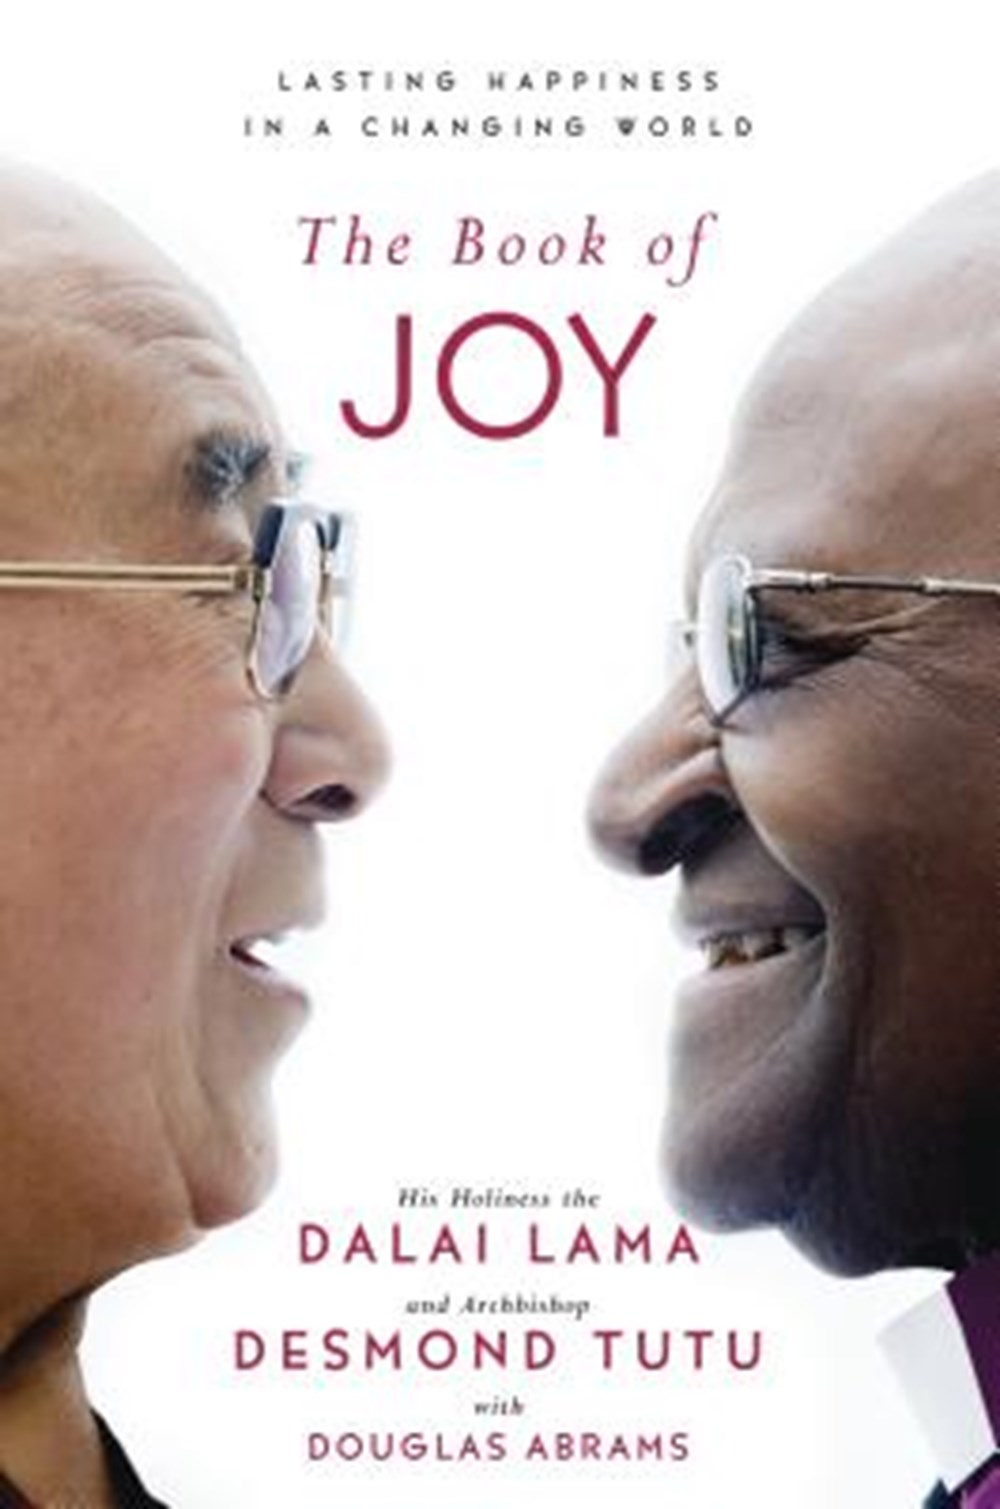 Book of Joy Lasting Happiness in a Changing World